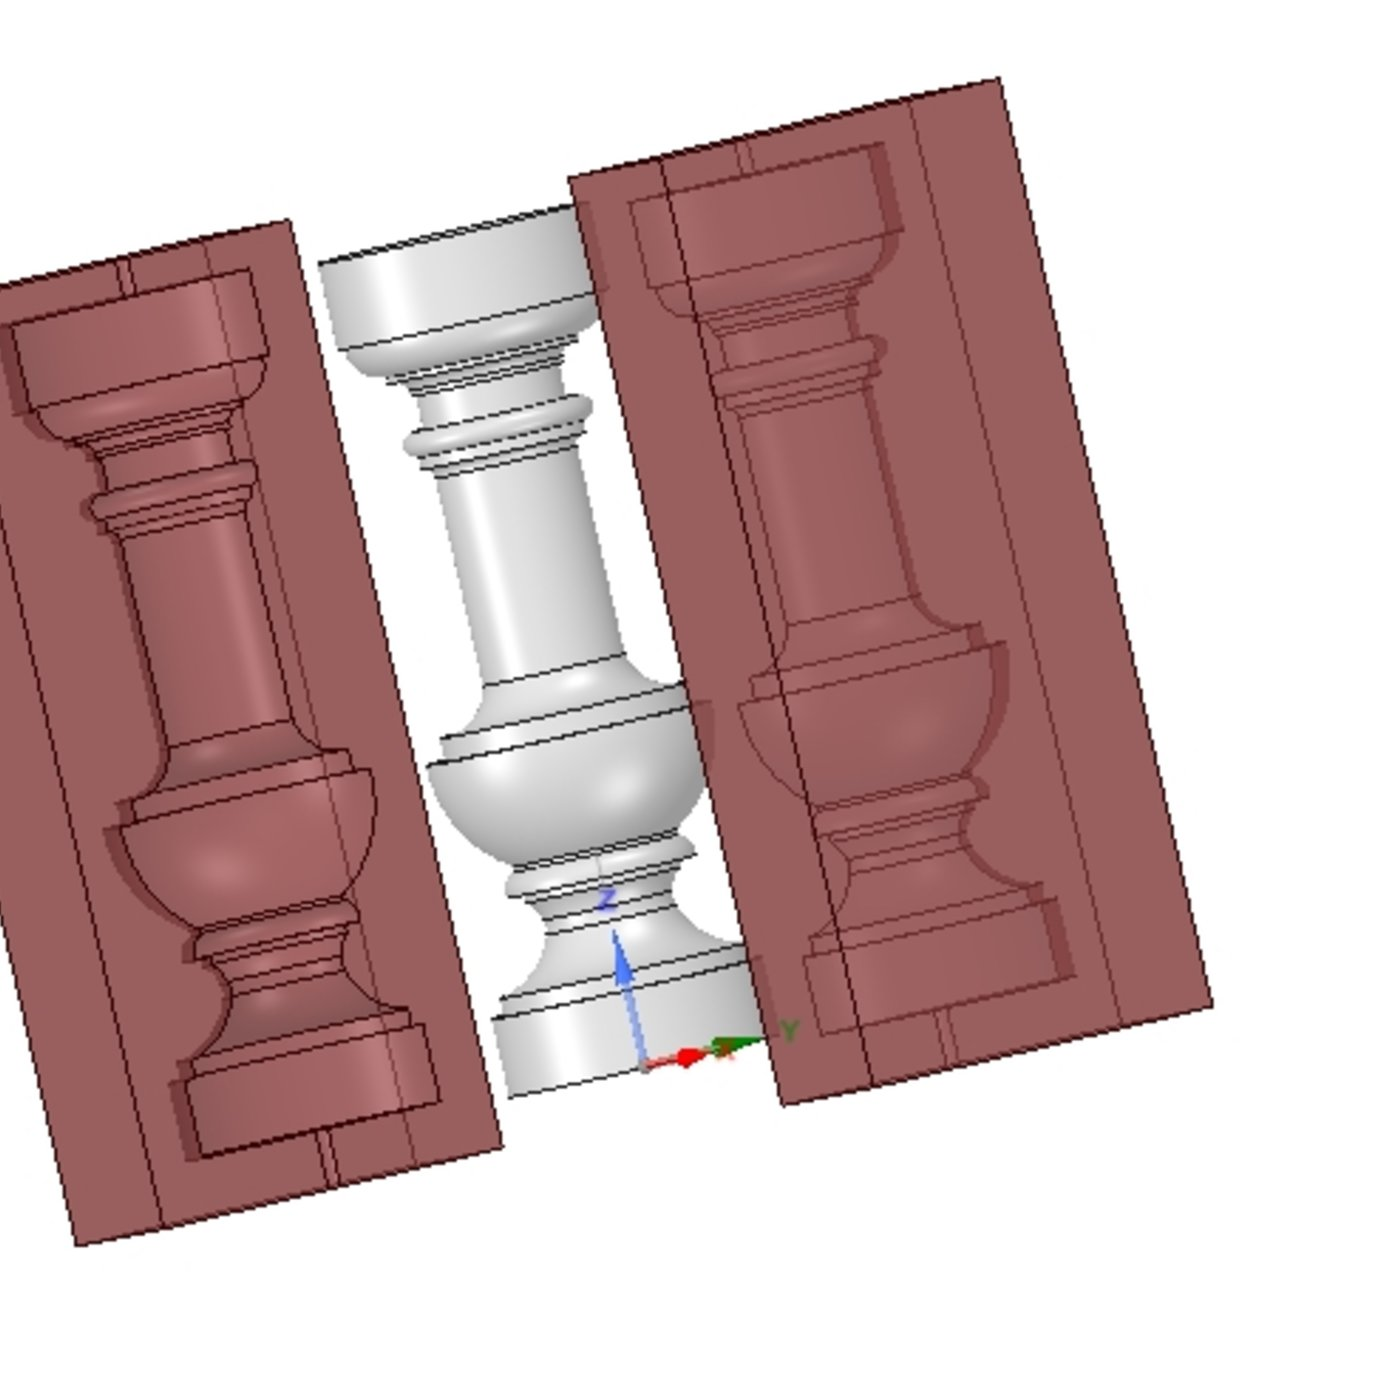 Designing creation of electronic forms for casting from gypsum, aluminum, resin, plastic and other materials, as well as for cold stamping of sheet materials.